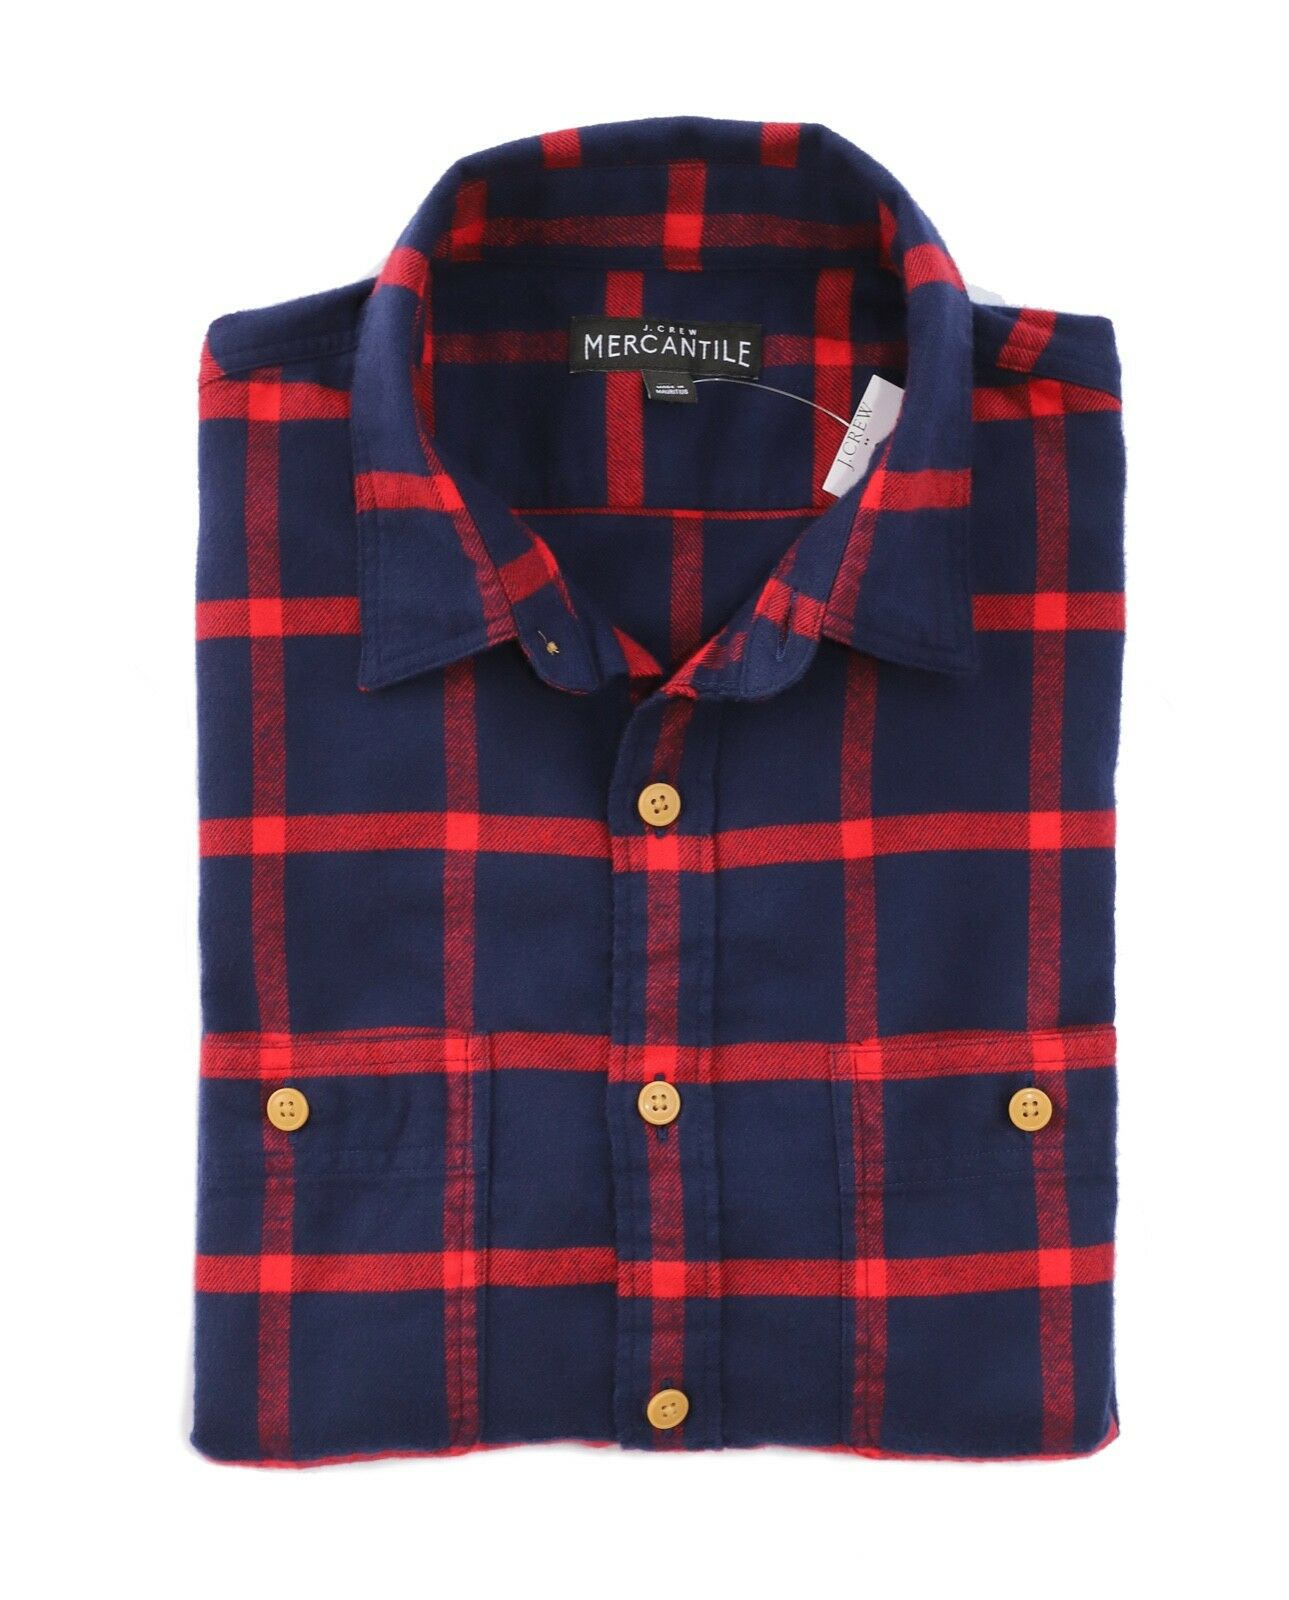 J.Crew Mercantile Mens XS Slim Fit - Imperial bluee Red Plaid Flannel Shirt